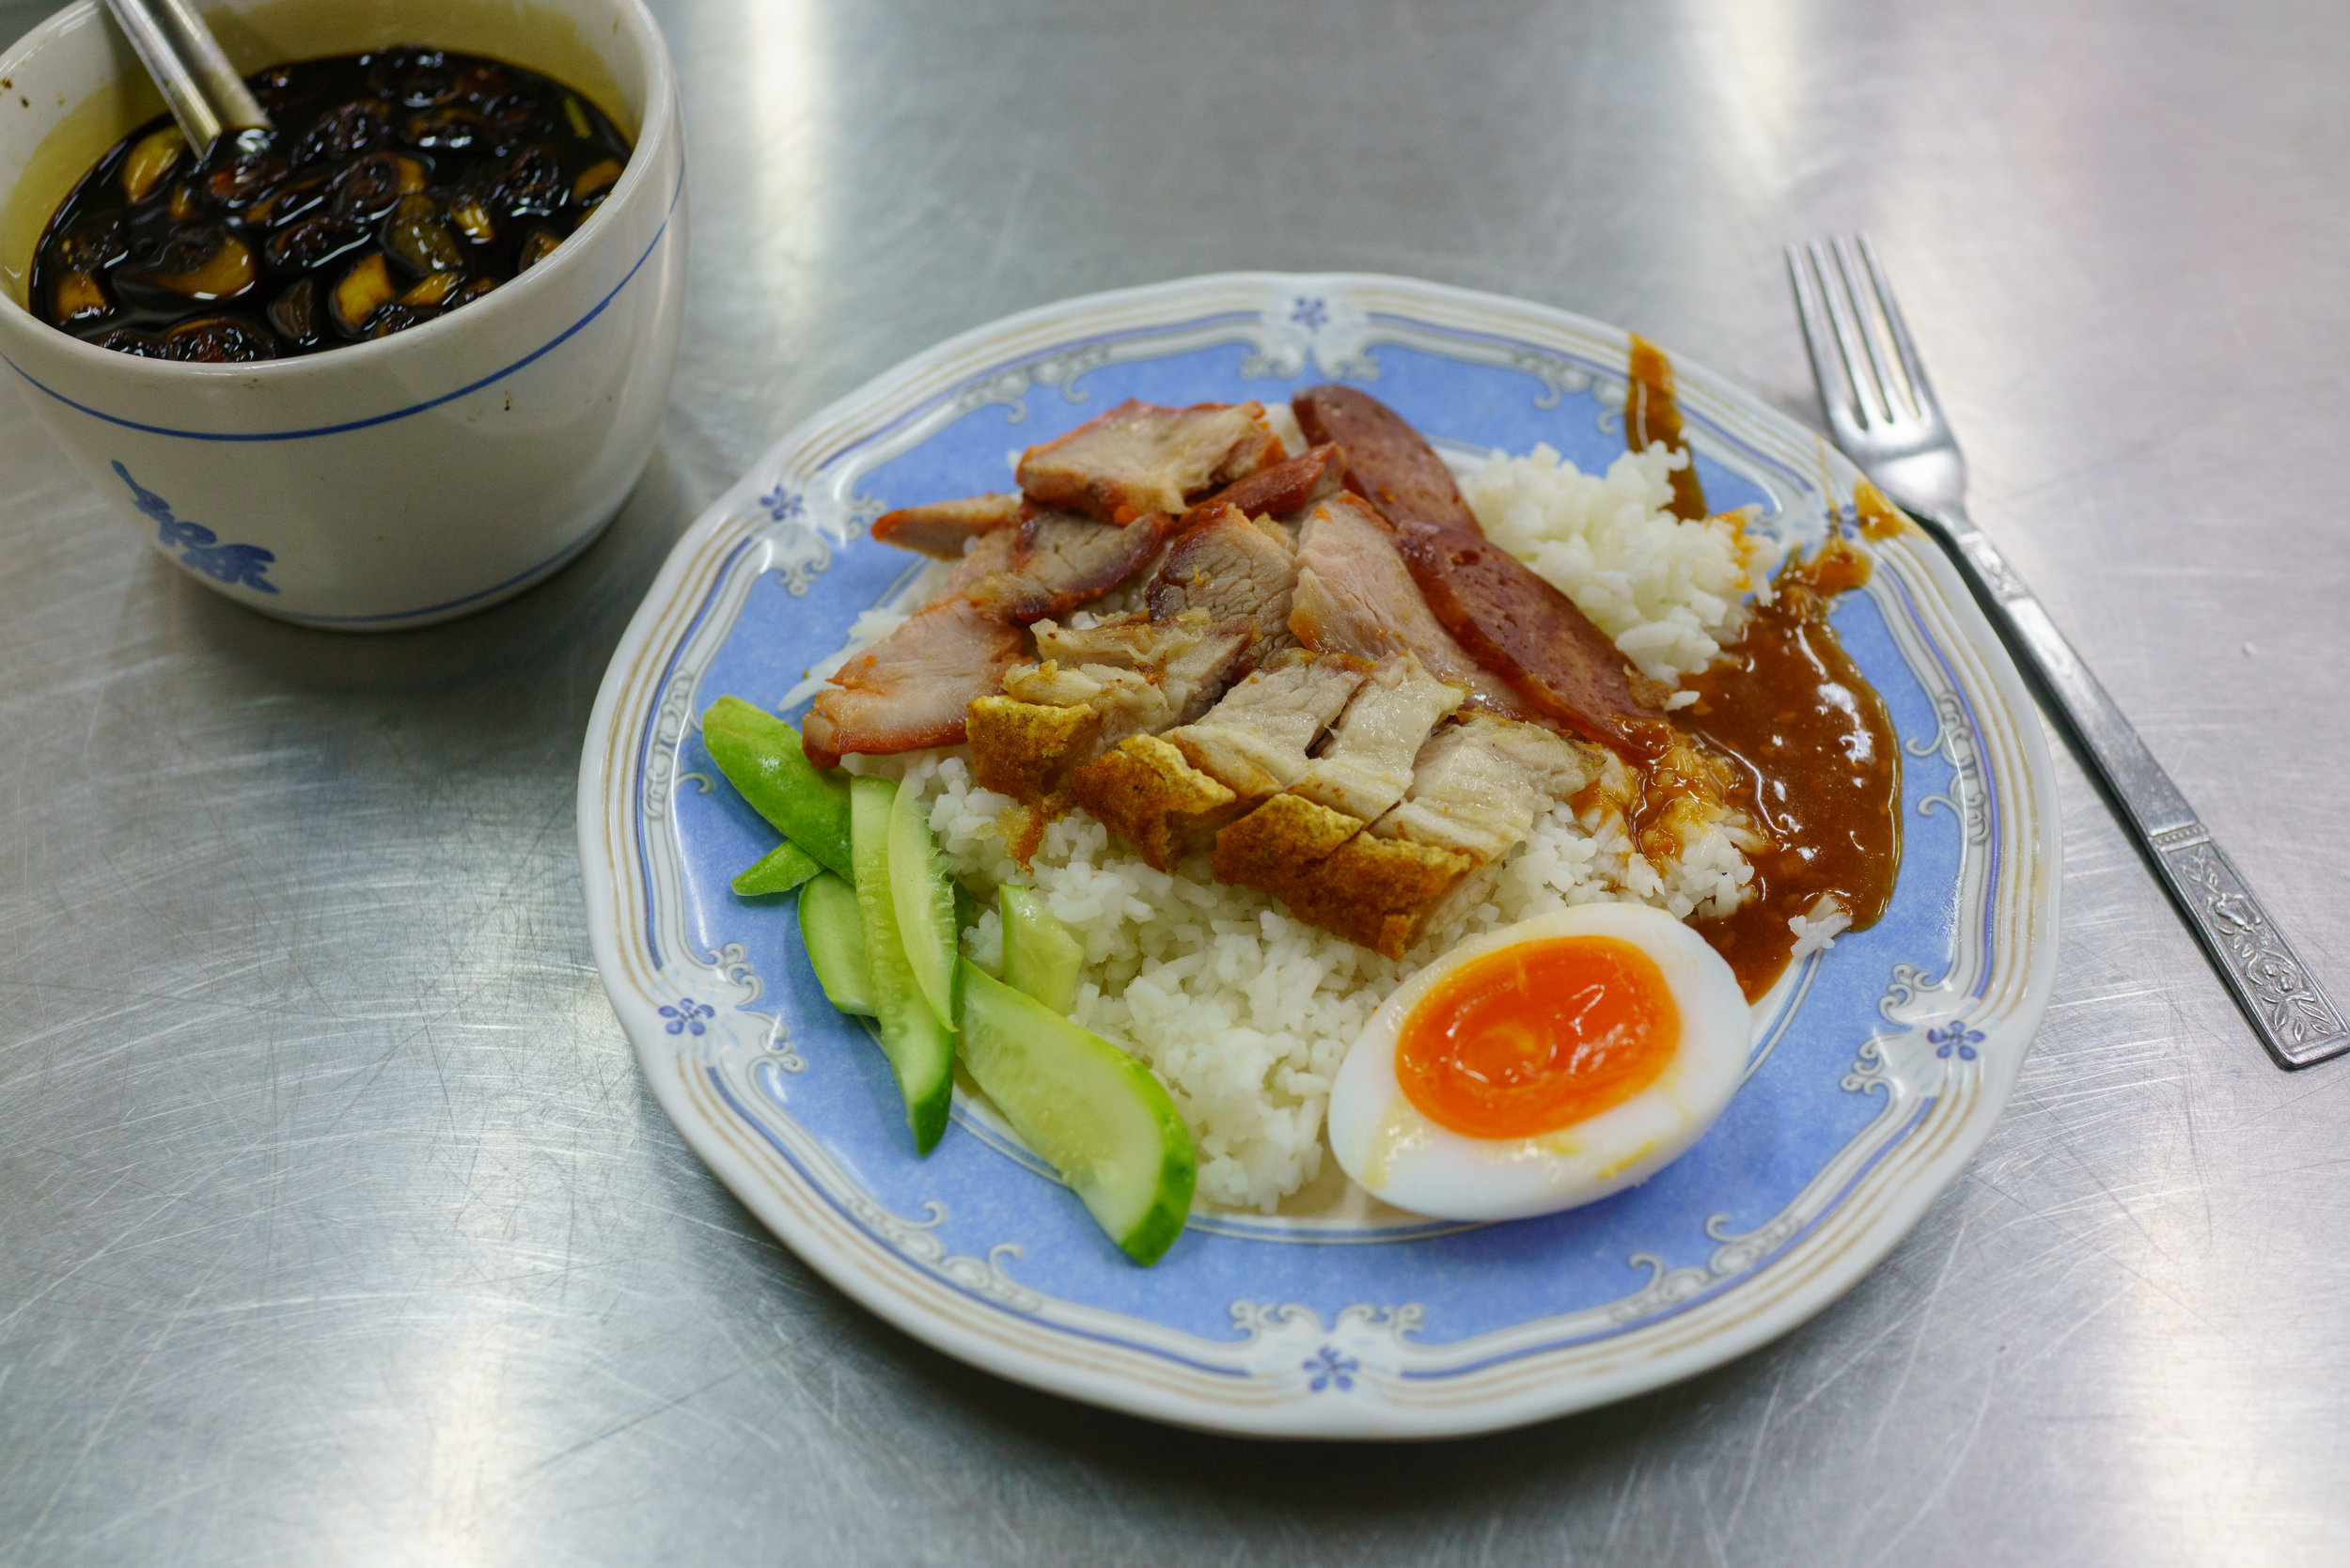 A simple plate of Thai red pork with rice for lunch